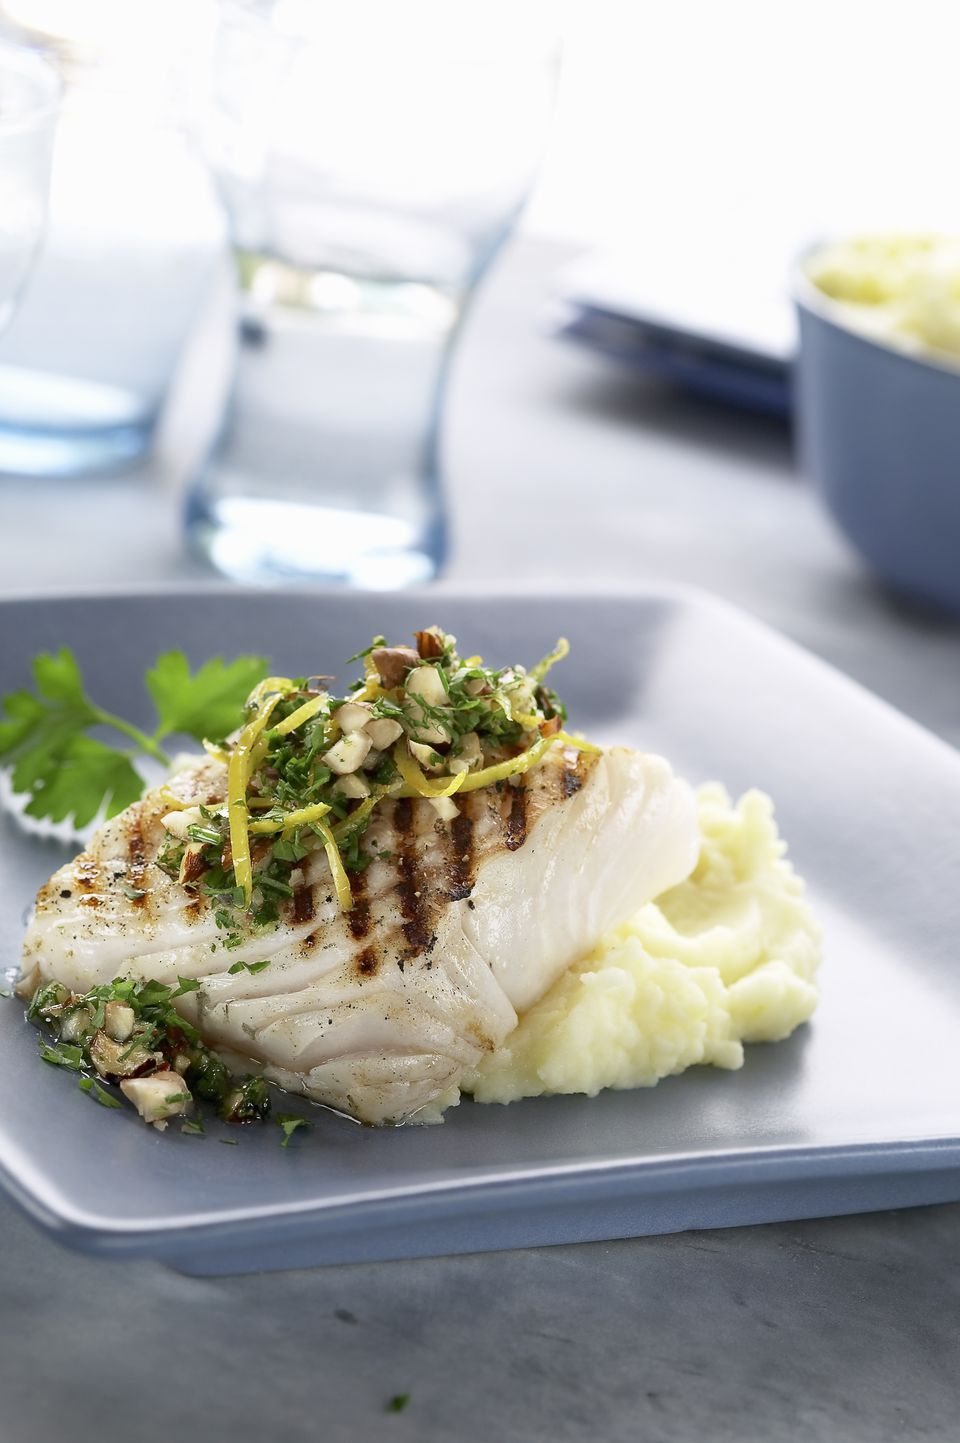 Fillet of cod with hazelnut and mashed potato